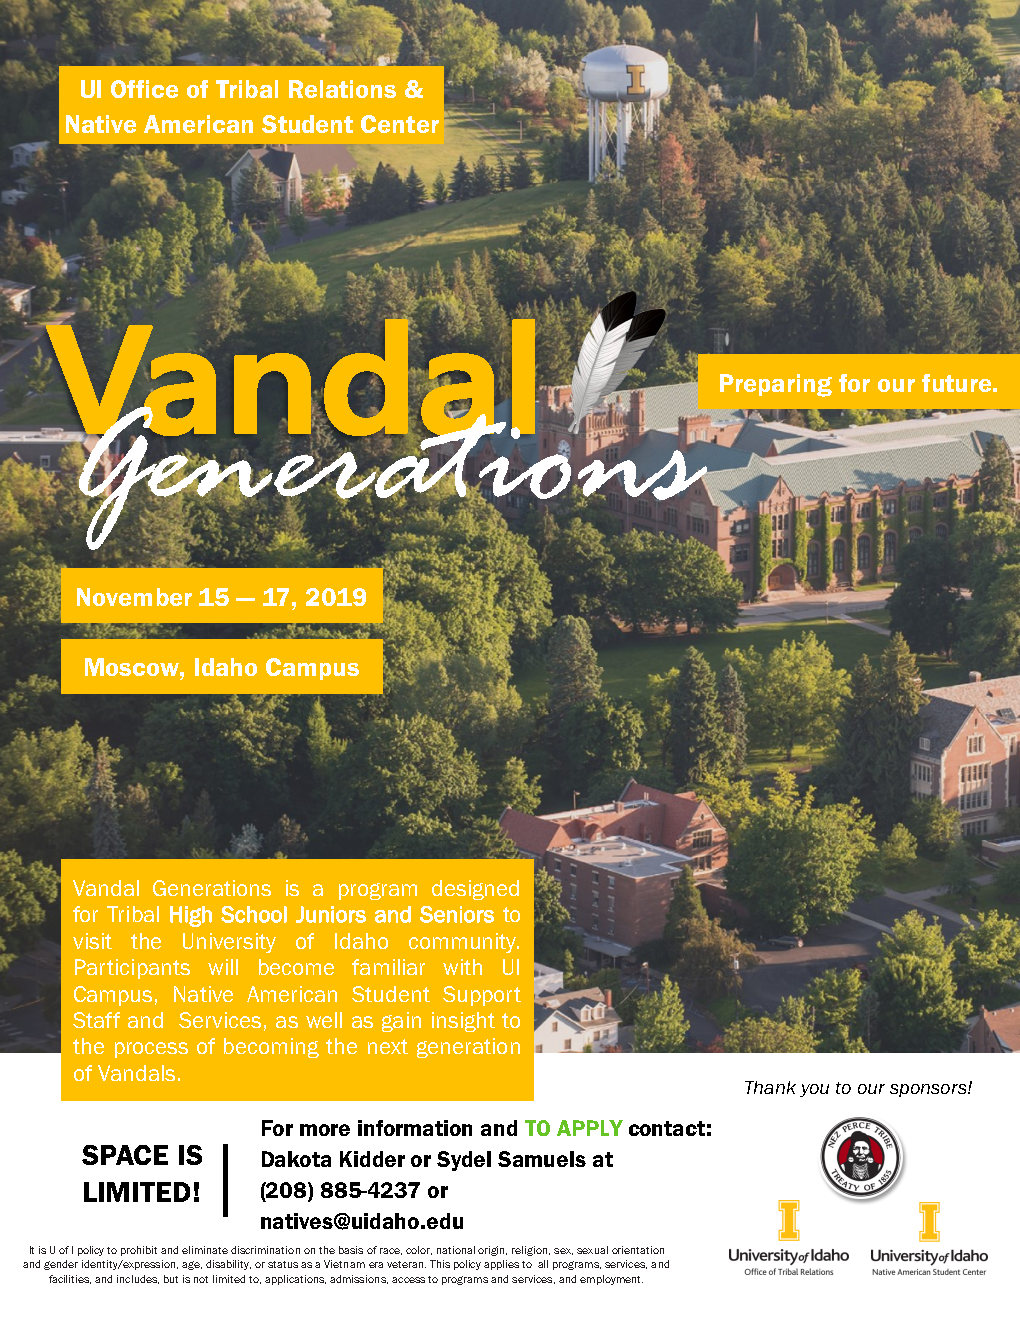 For High School Students: U of Idaho Vandal Generations Flyer